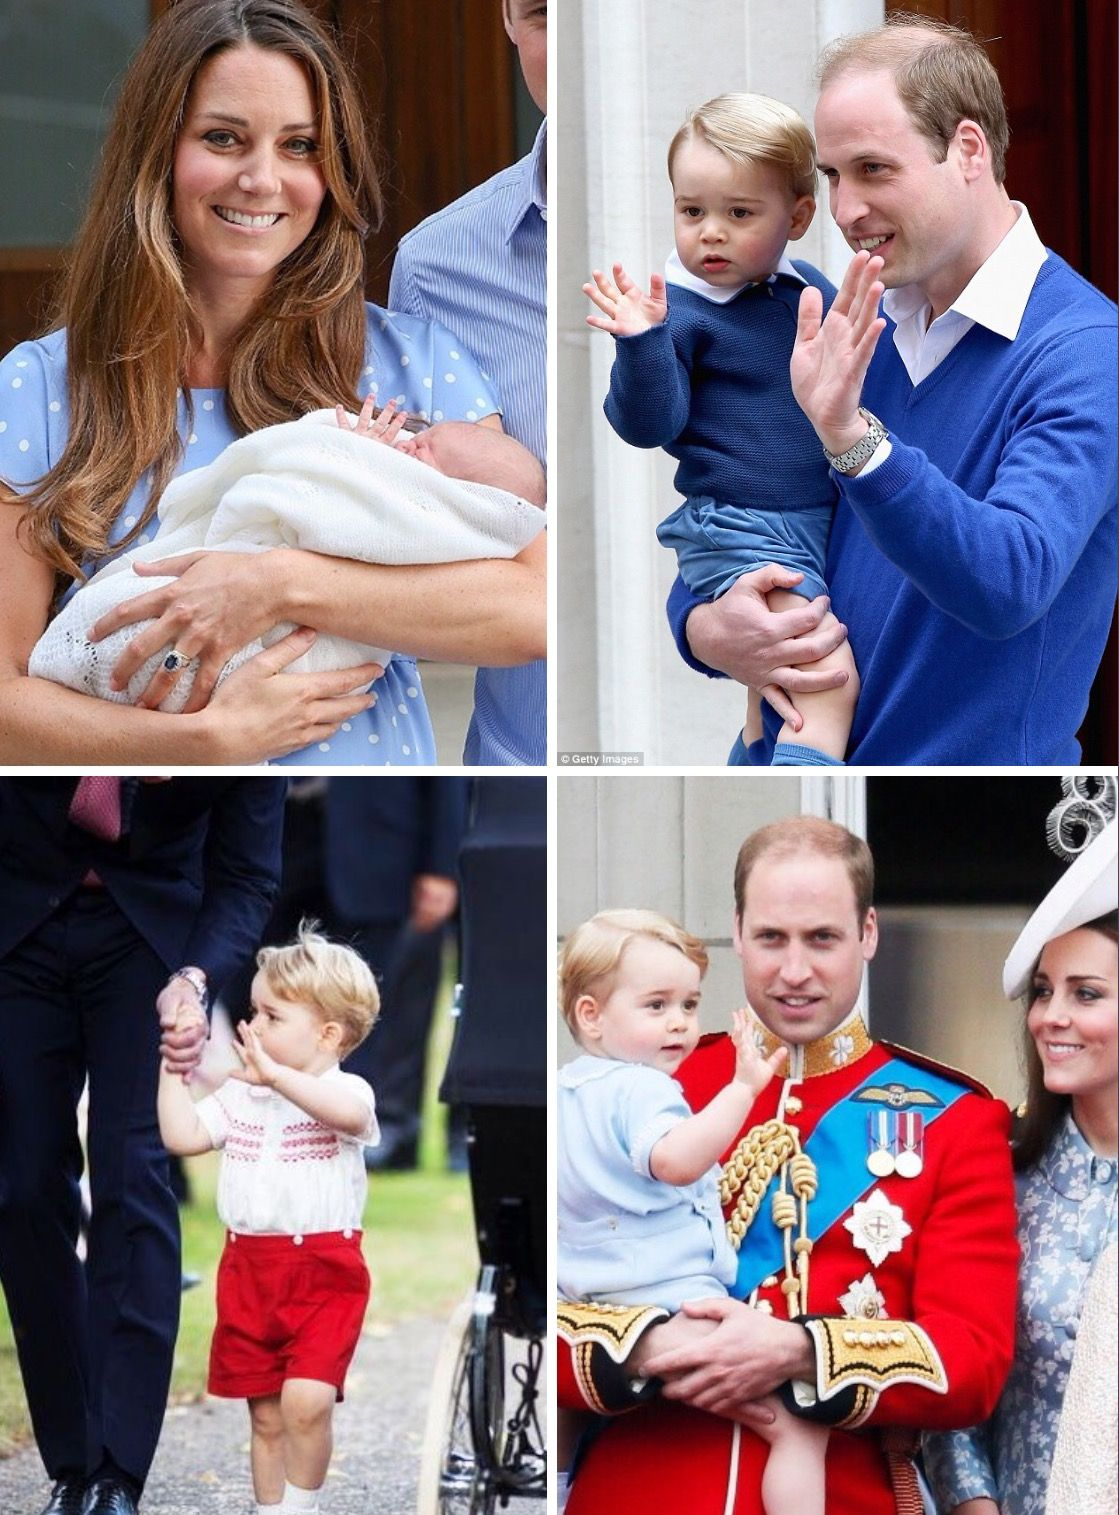 Prince George mastering the Royal wave